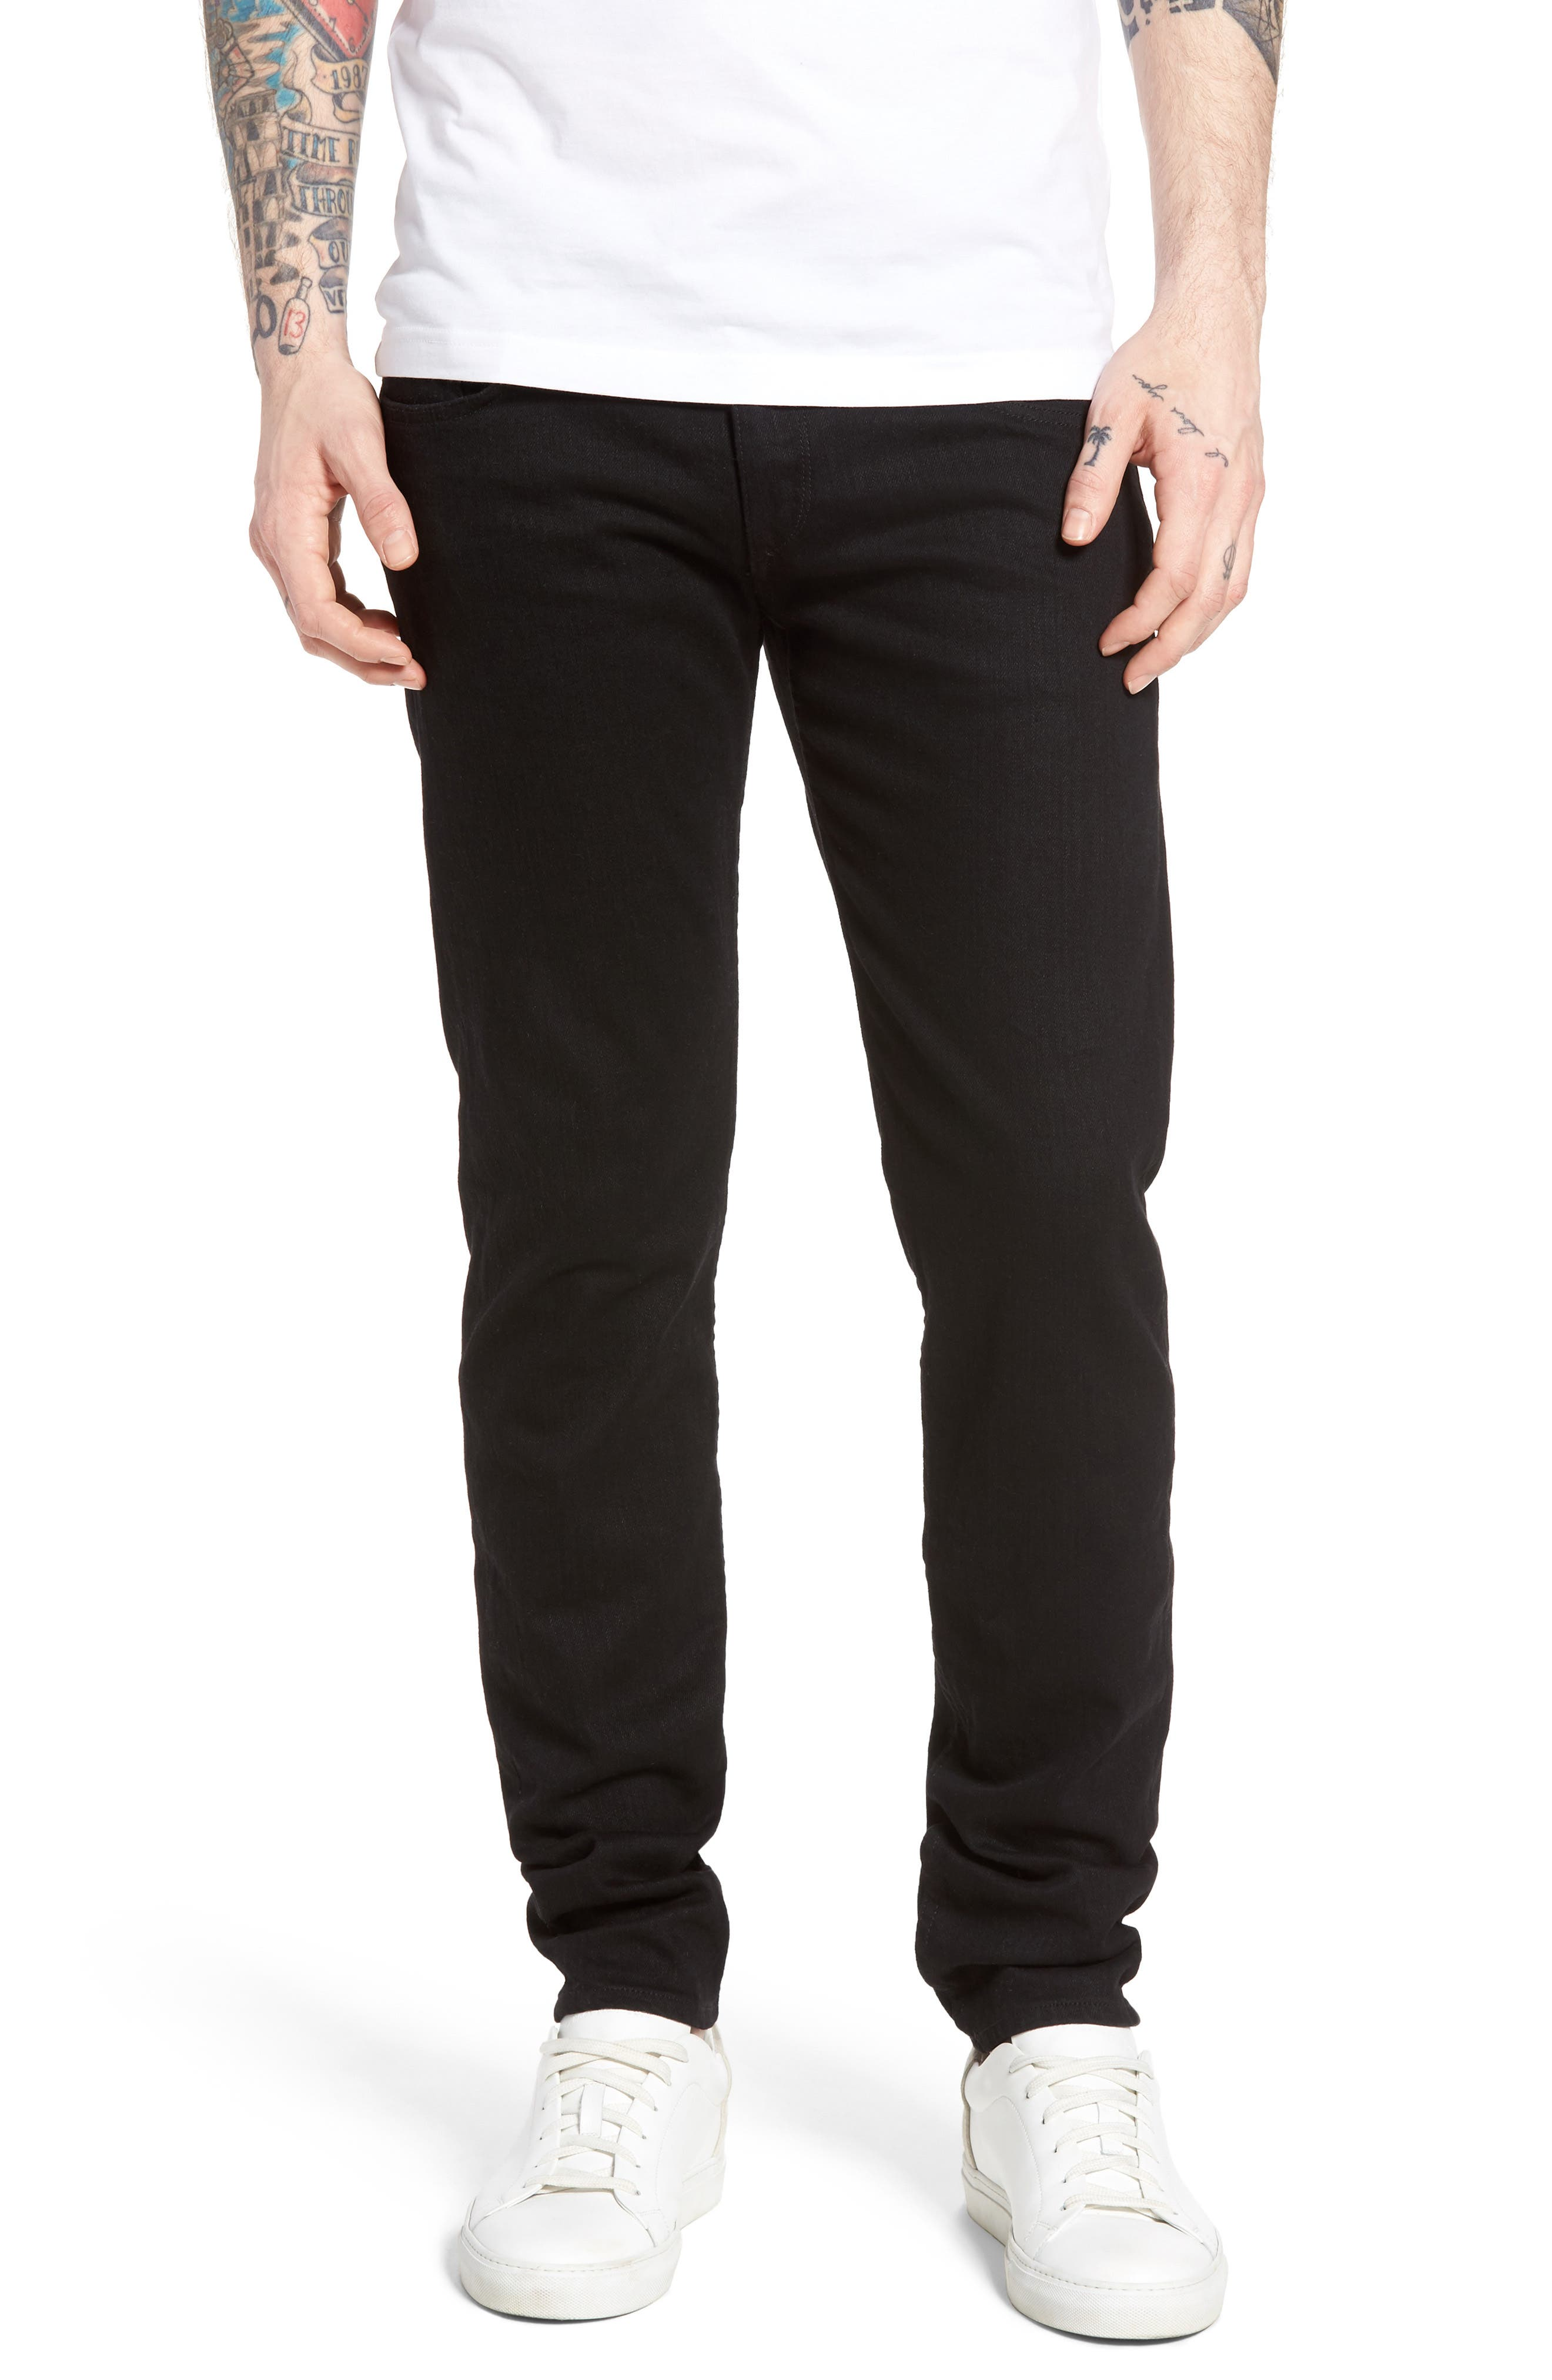 Standard Issue Fit 1 Skinny Fit Jeans,                         Main,                         color, Black